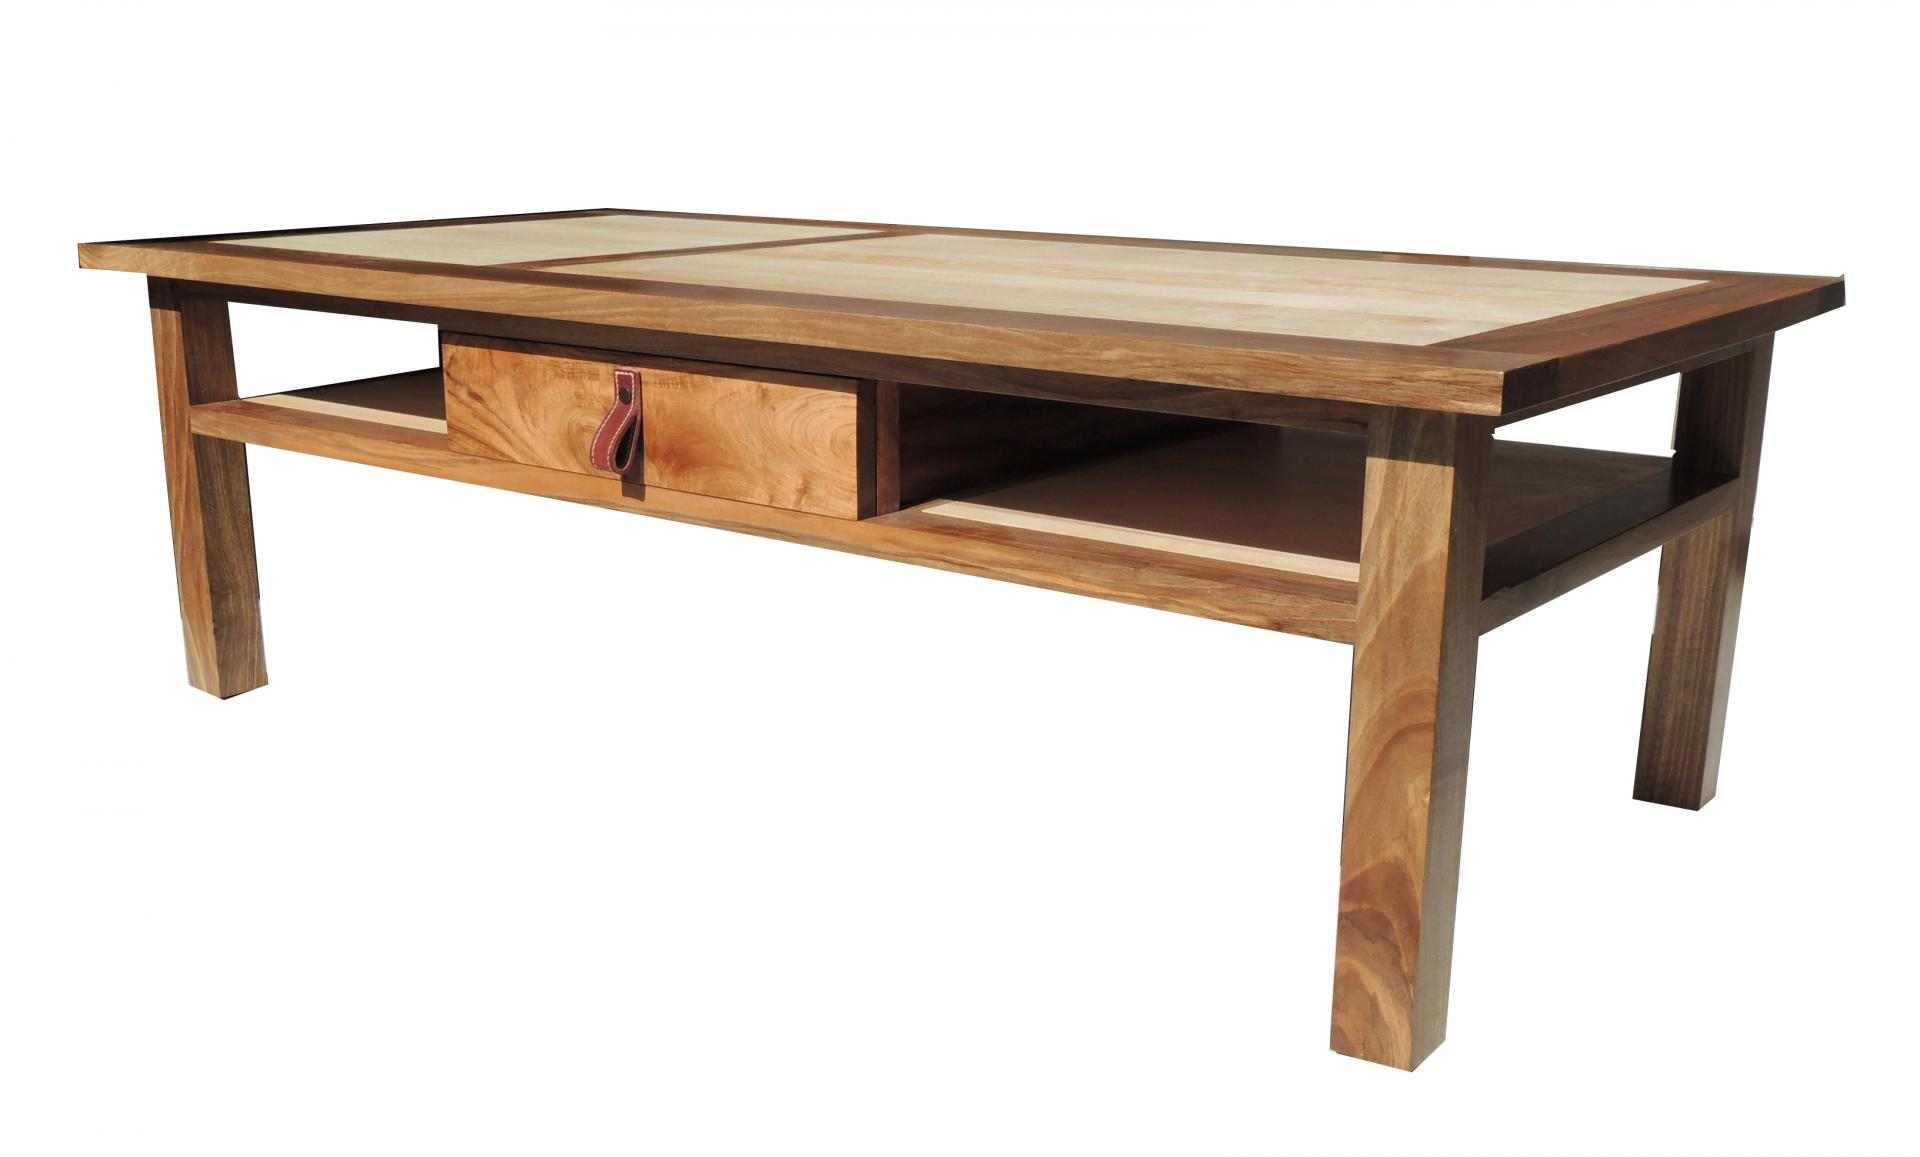 Taille Table Basse Table Toutes Tailles